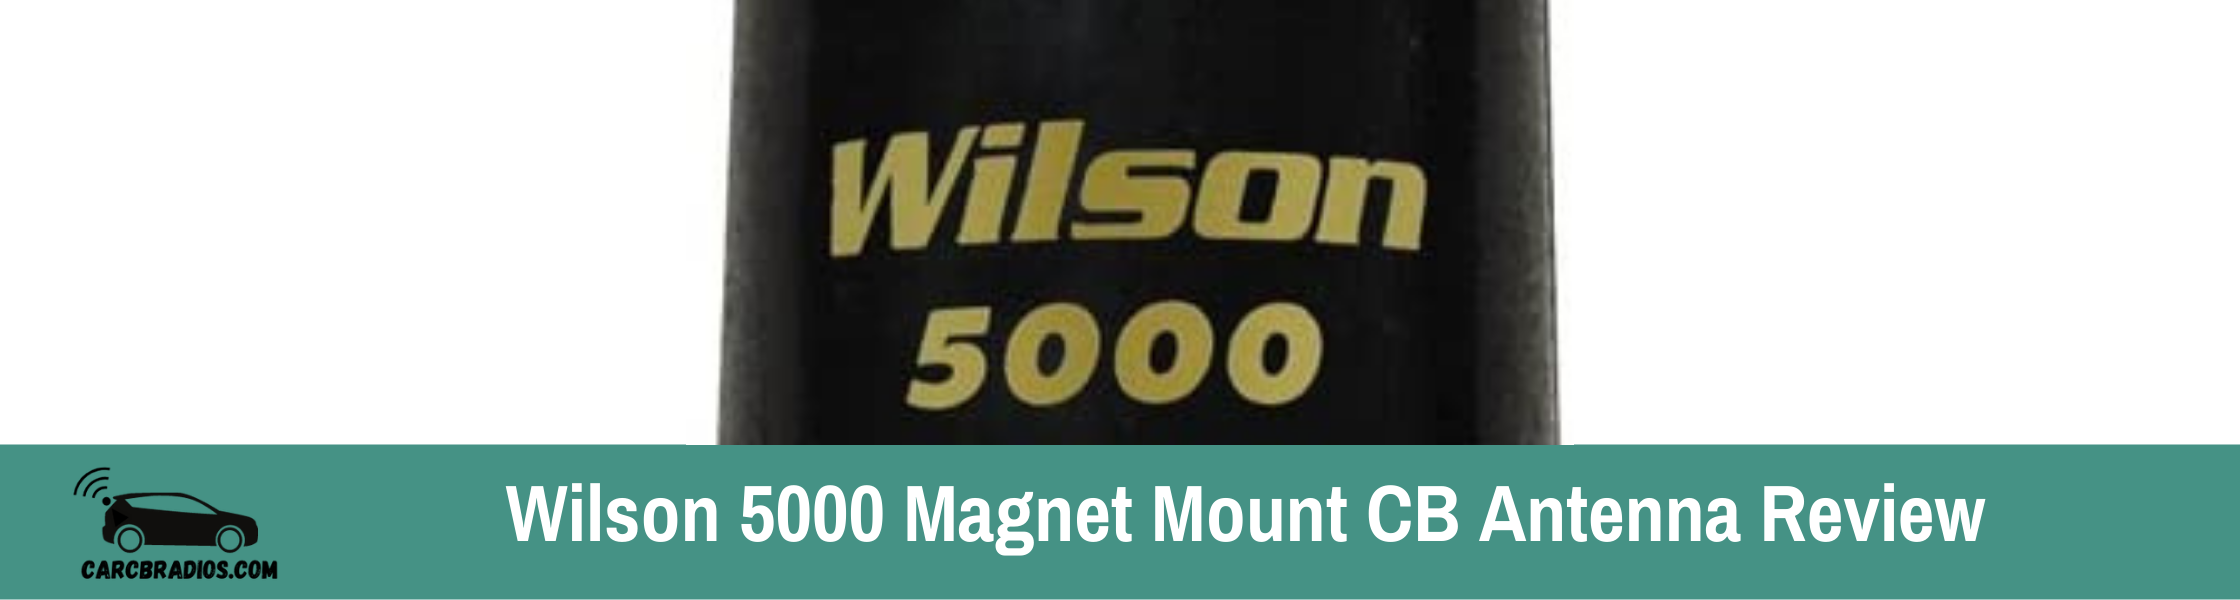 Wilson 5000 Magnet Mount CB Antenna Review: As the top-performing base-loaded CB antenna for truckers, it uses a basic design as that of the Wilson Trucker 5000.